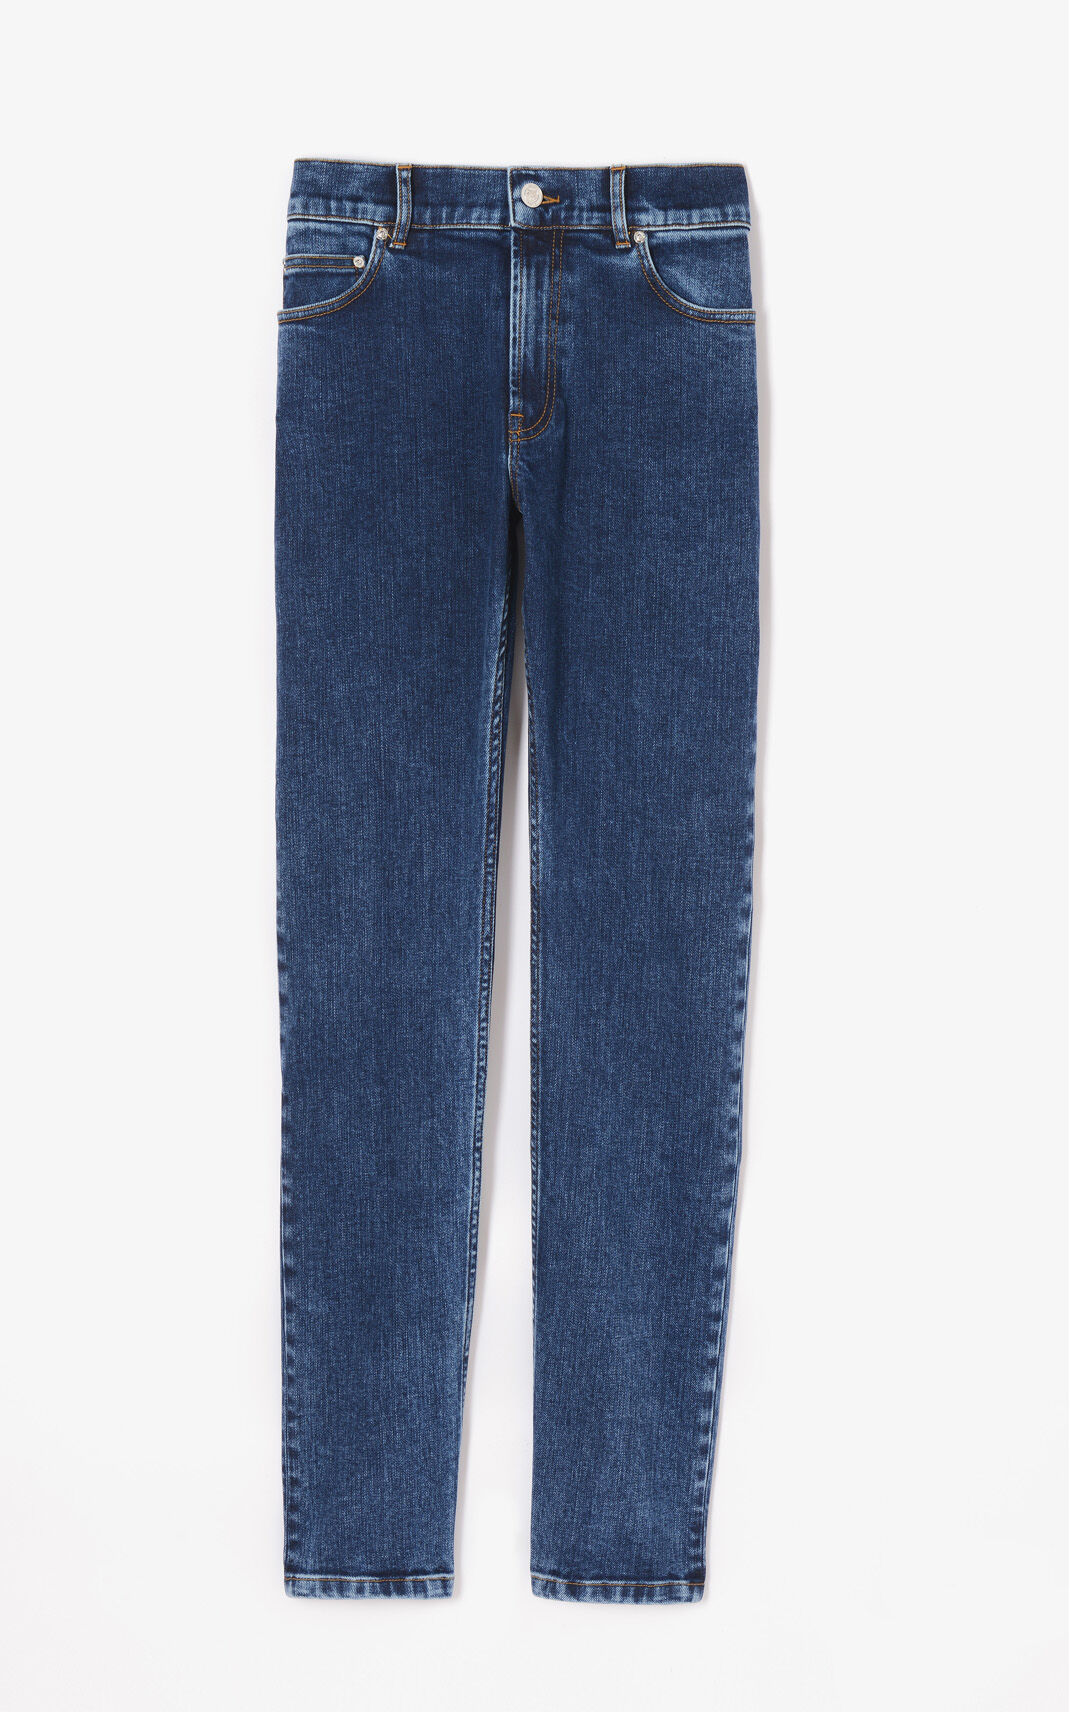 NAVY BLUE KENZO Signature jeans for men